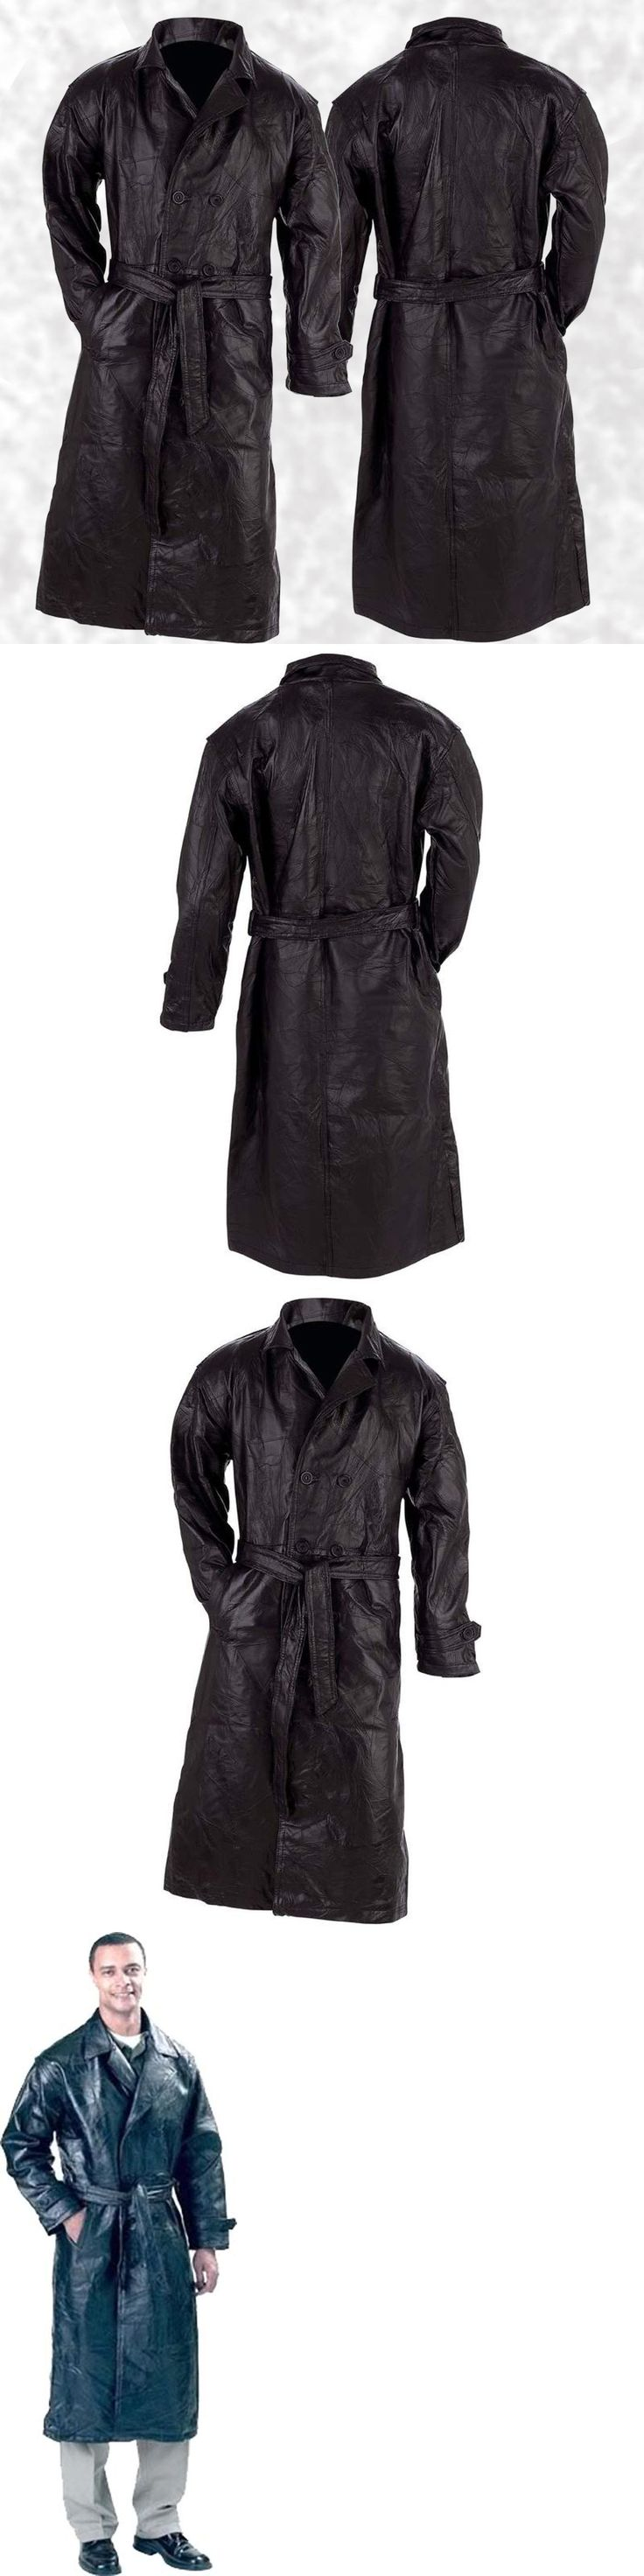 Coats and Jackets 57988: Mens Lined Black Leather Button Front Trench Over Coat Full Length Duster Jacket -> BUY IT NOW ONLY: $43.89 on eBay!